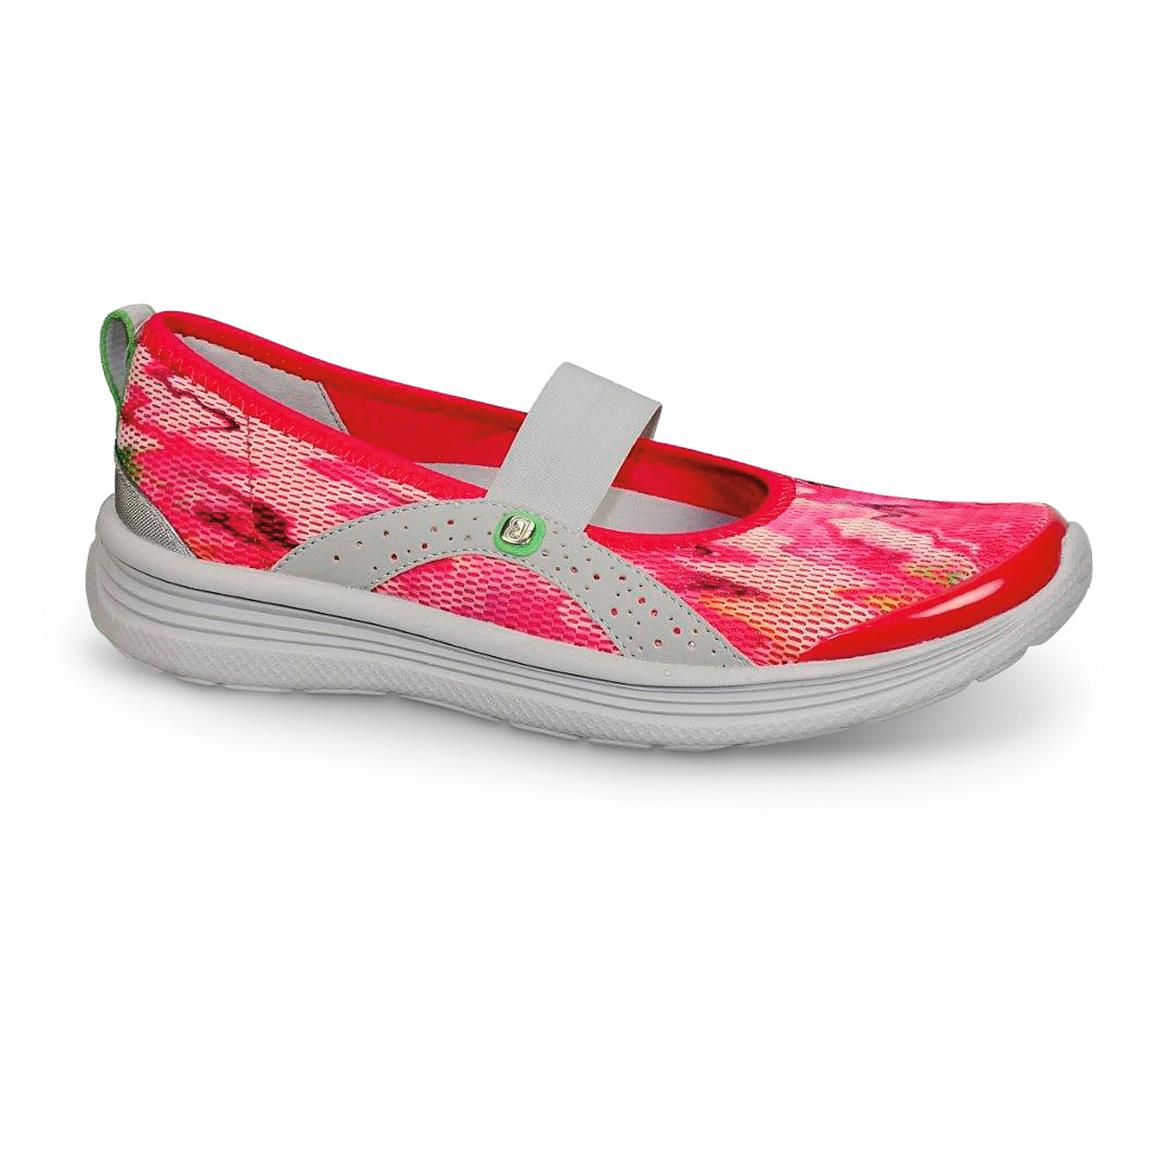 Bzees® Women's Wish Water Slip-On Shoes, Pink Impression